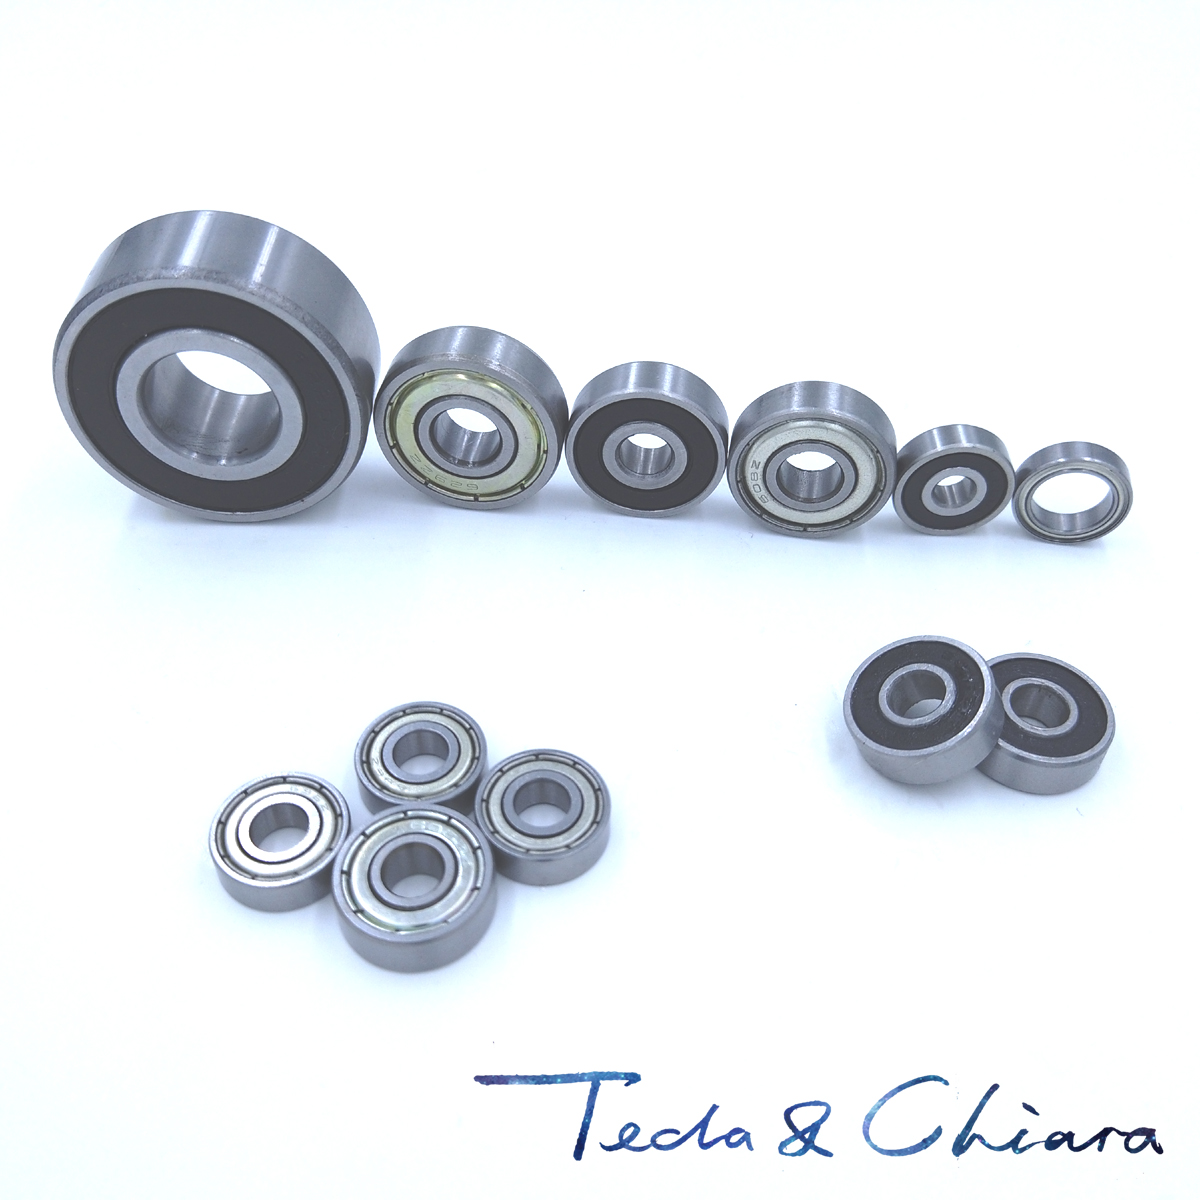 10Pcs 678RS 678ZZ MR128 <font><b>MR128ZZ</b></font> MR128RS MR128-2Z MR128-2RS 678 ZZ RS RZ 2RZ Deep Groove Ball Bearings 8 x 12 x 3.5mm image